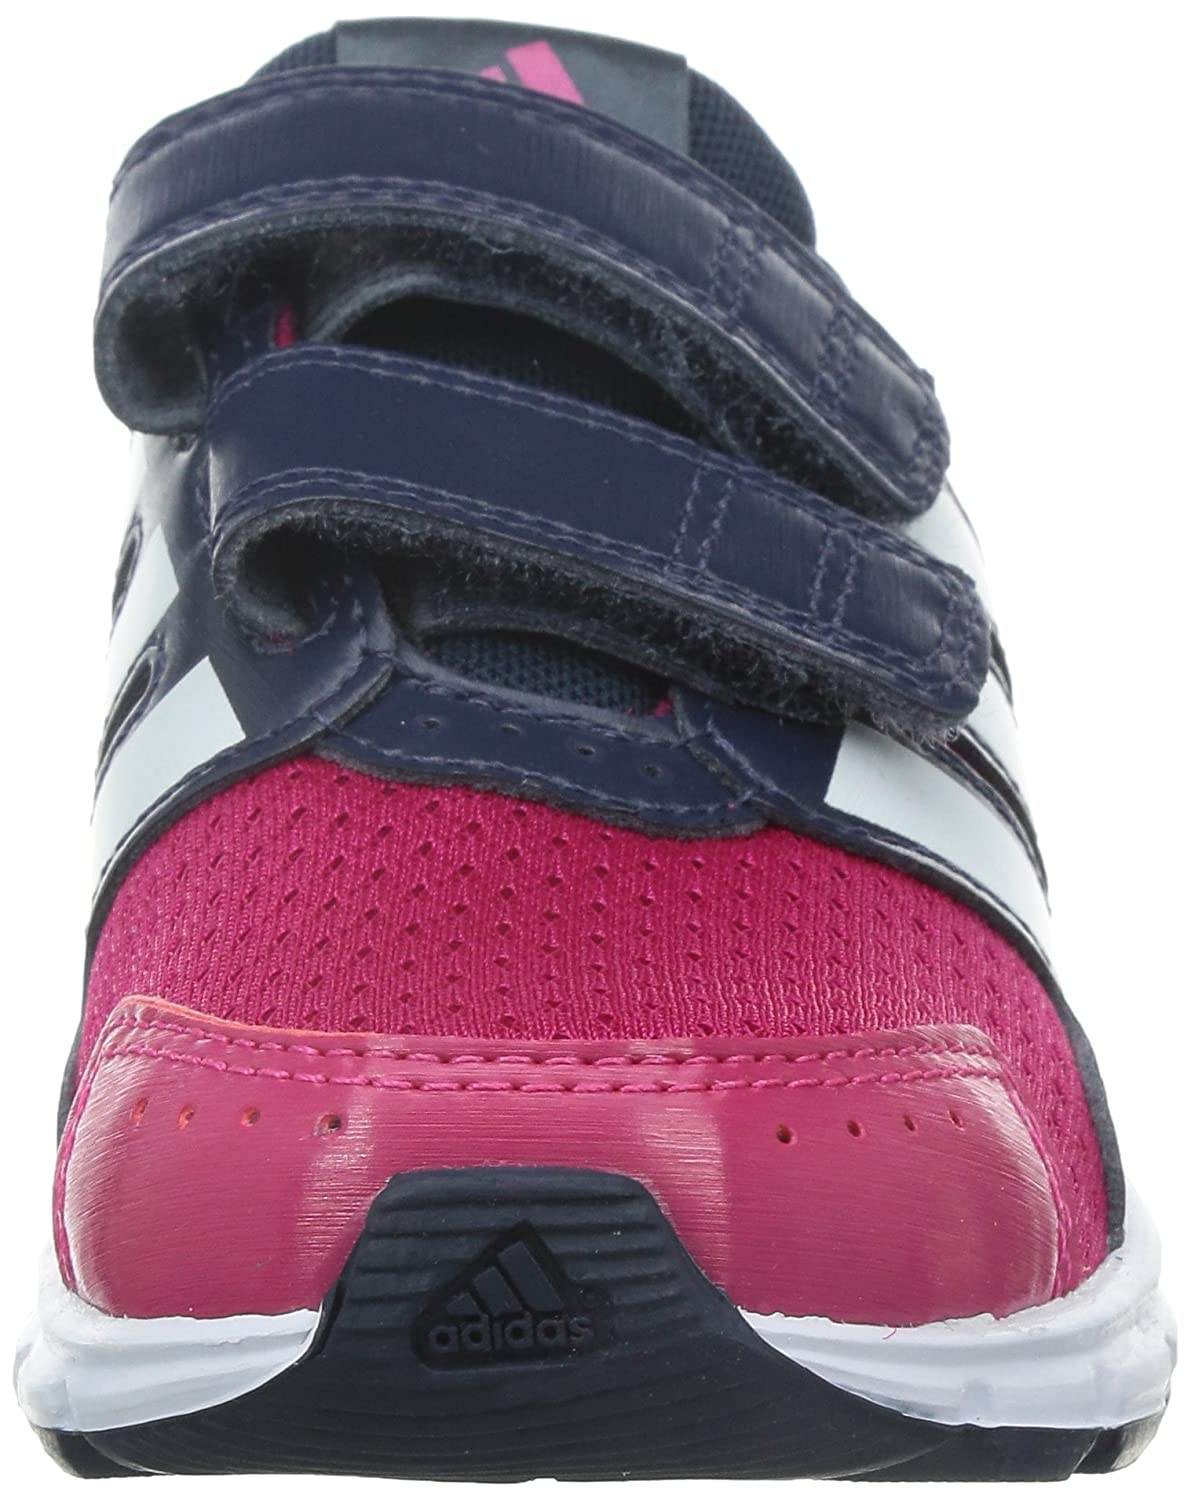 online retailer 4c7a1 3fb6f adidas Childrens Running Shoes Sport lk CF I Amazon.co.uk Shoes  Bags